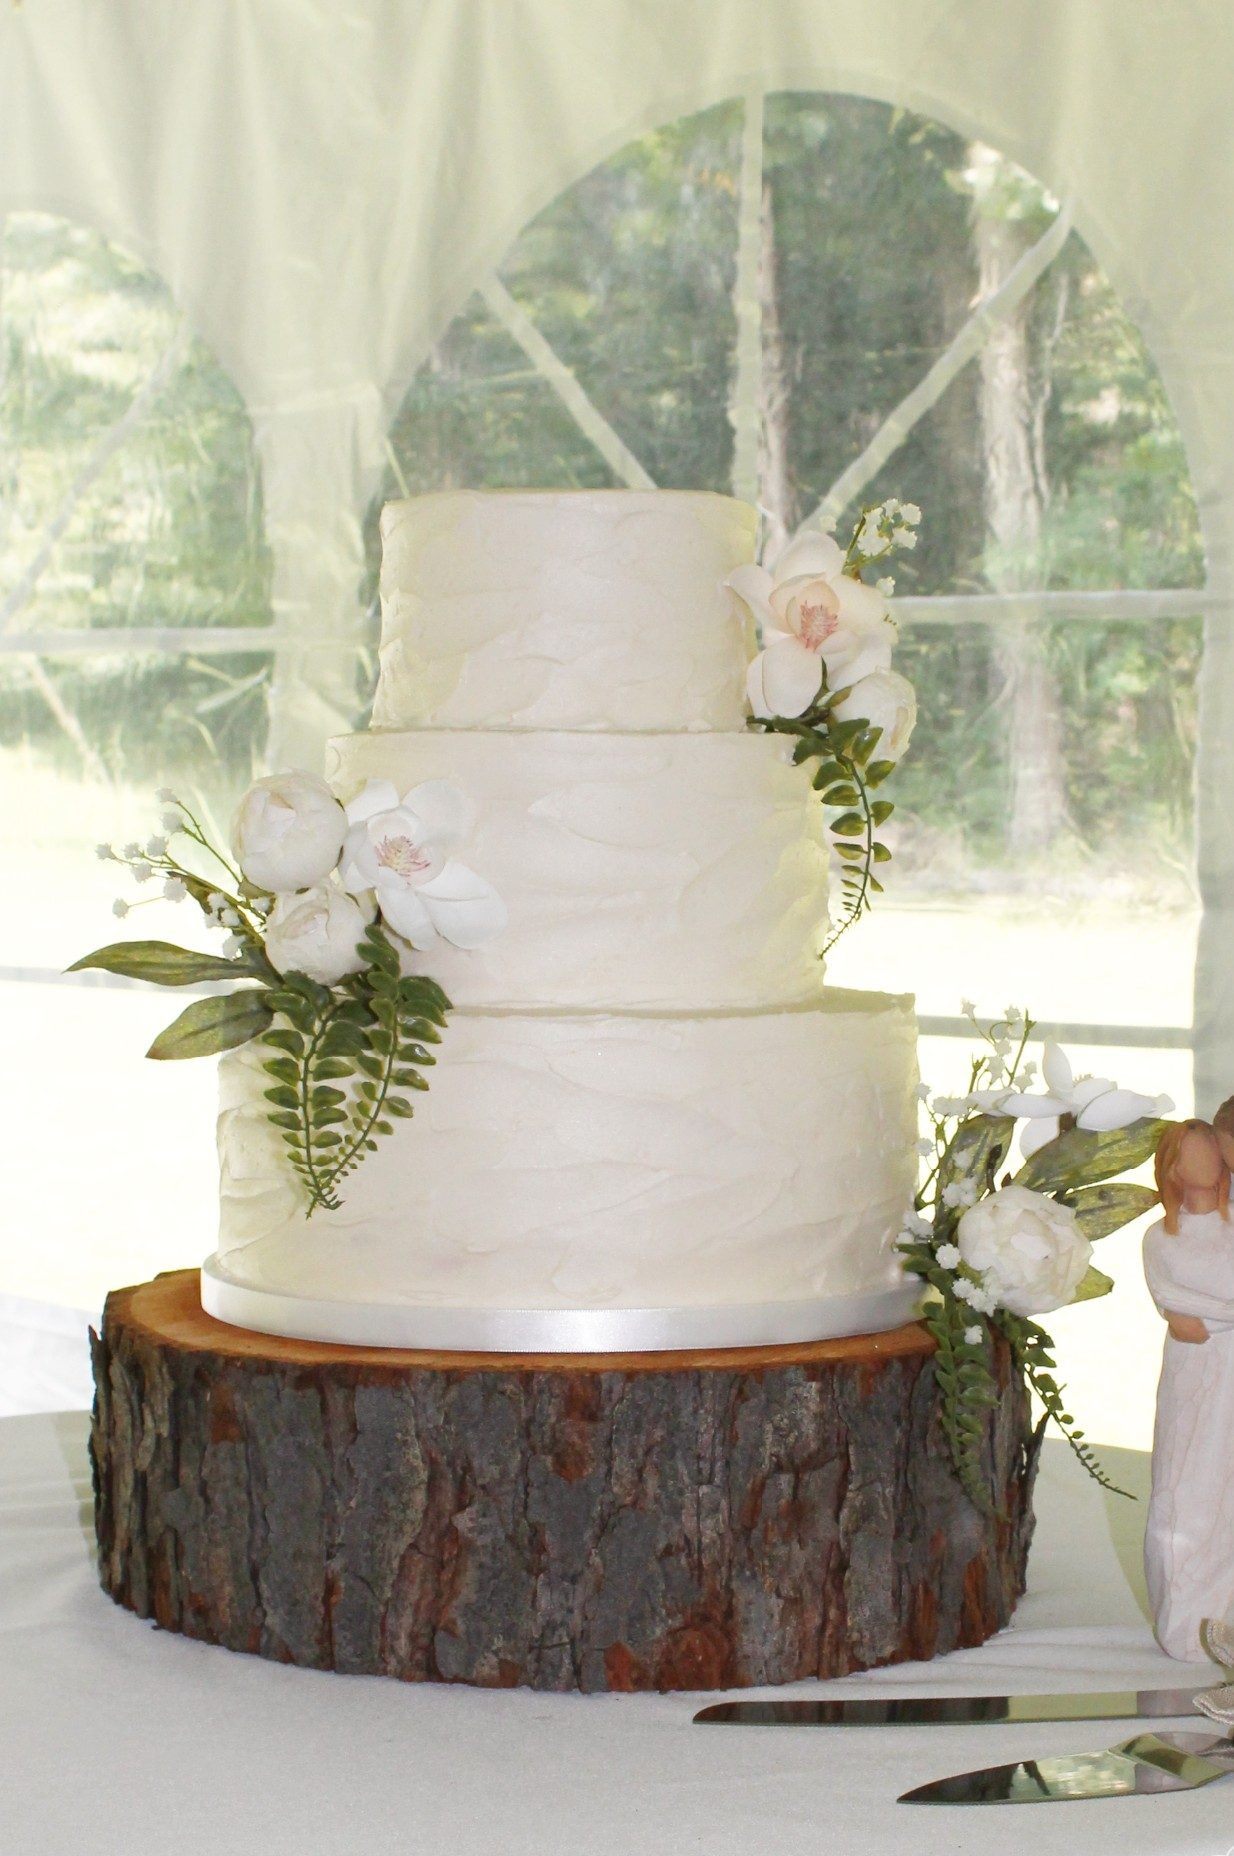 Classic Buttercream Wedding Cake with White and Pink